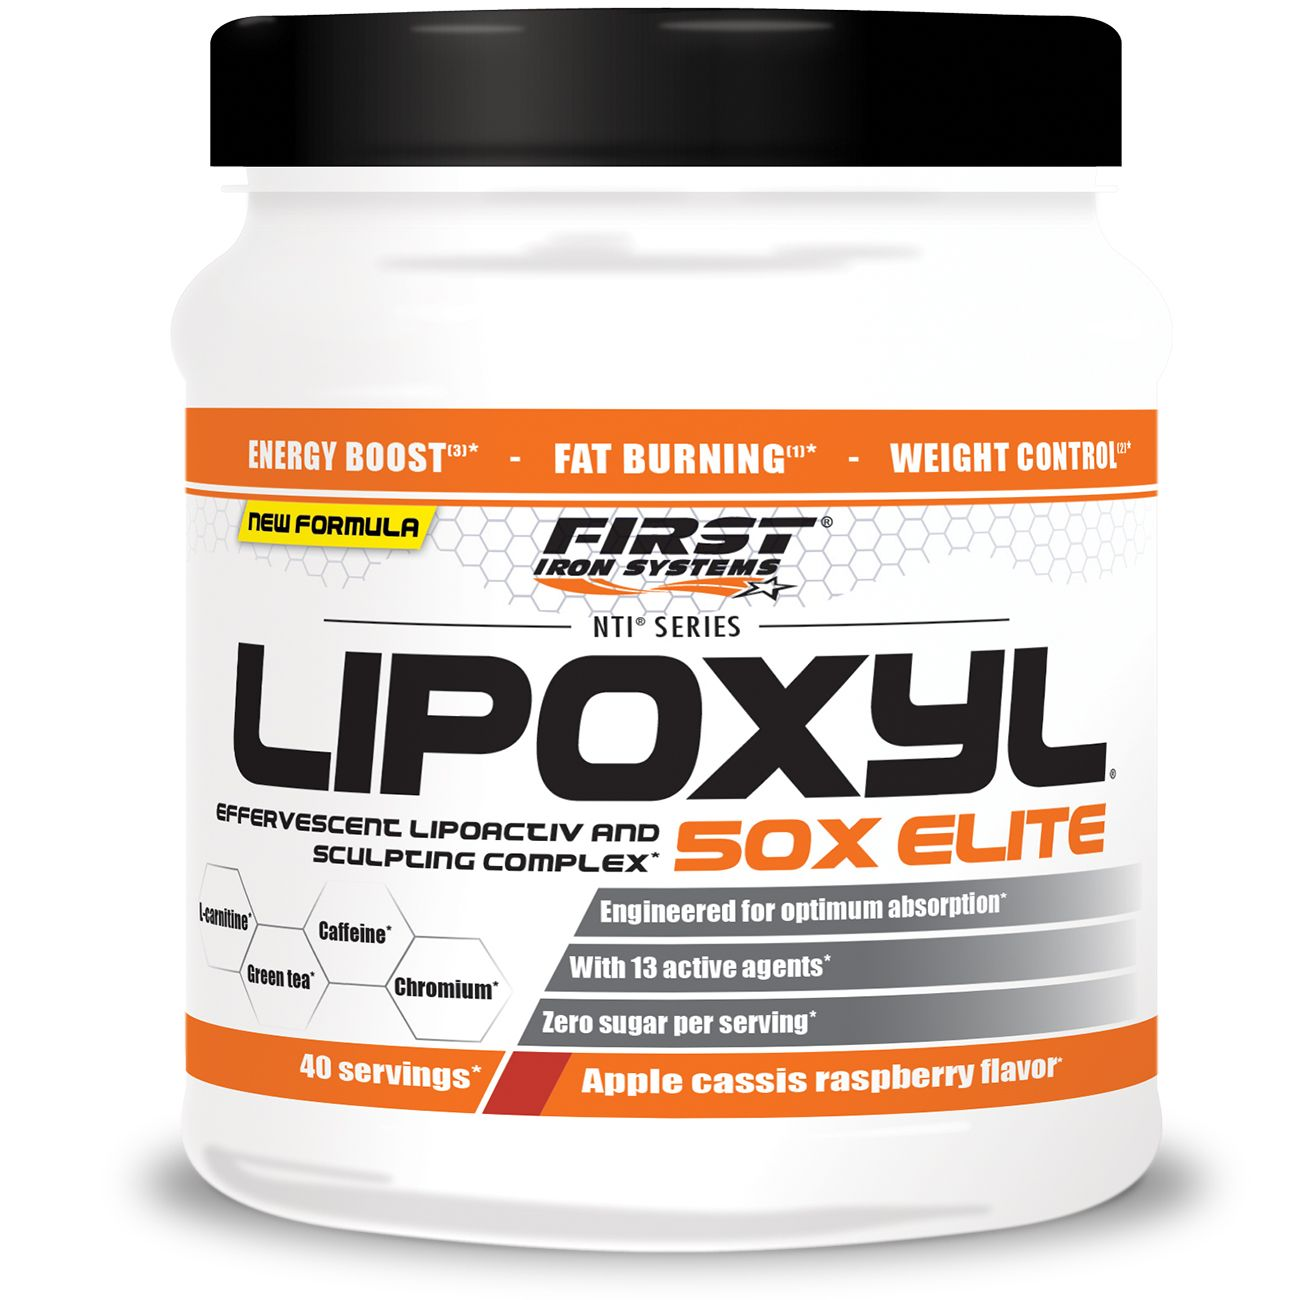 FIRST IRON SYSTEMS LIPOXYL 50X ELITE